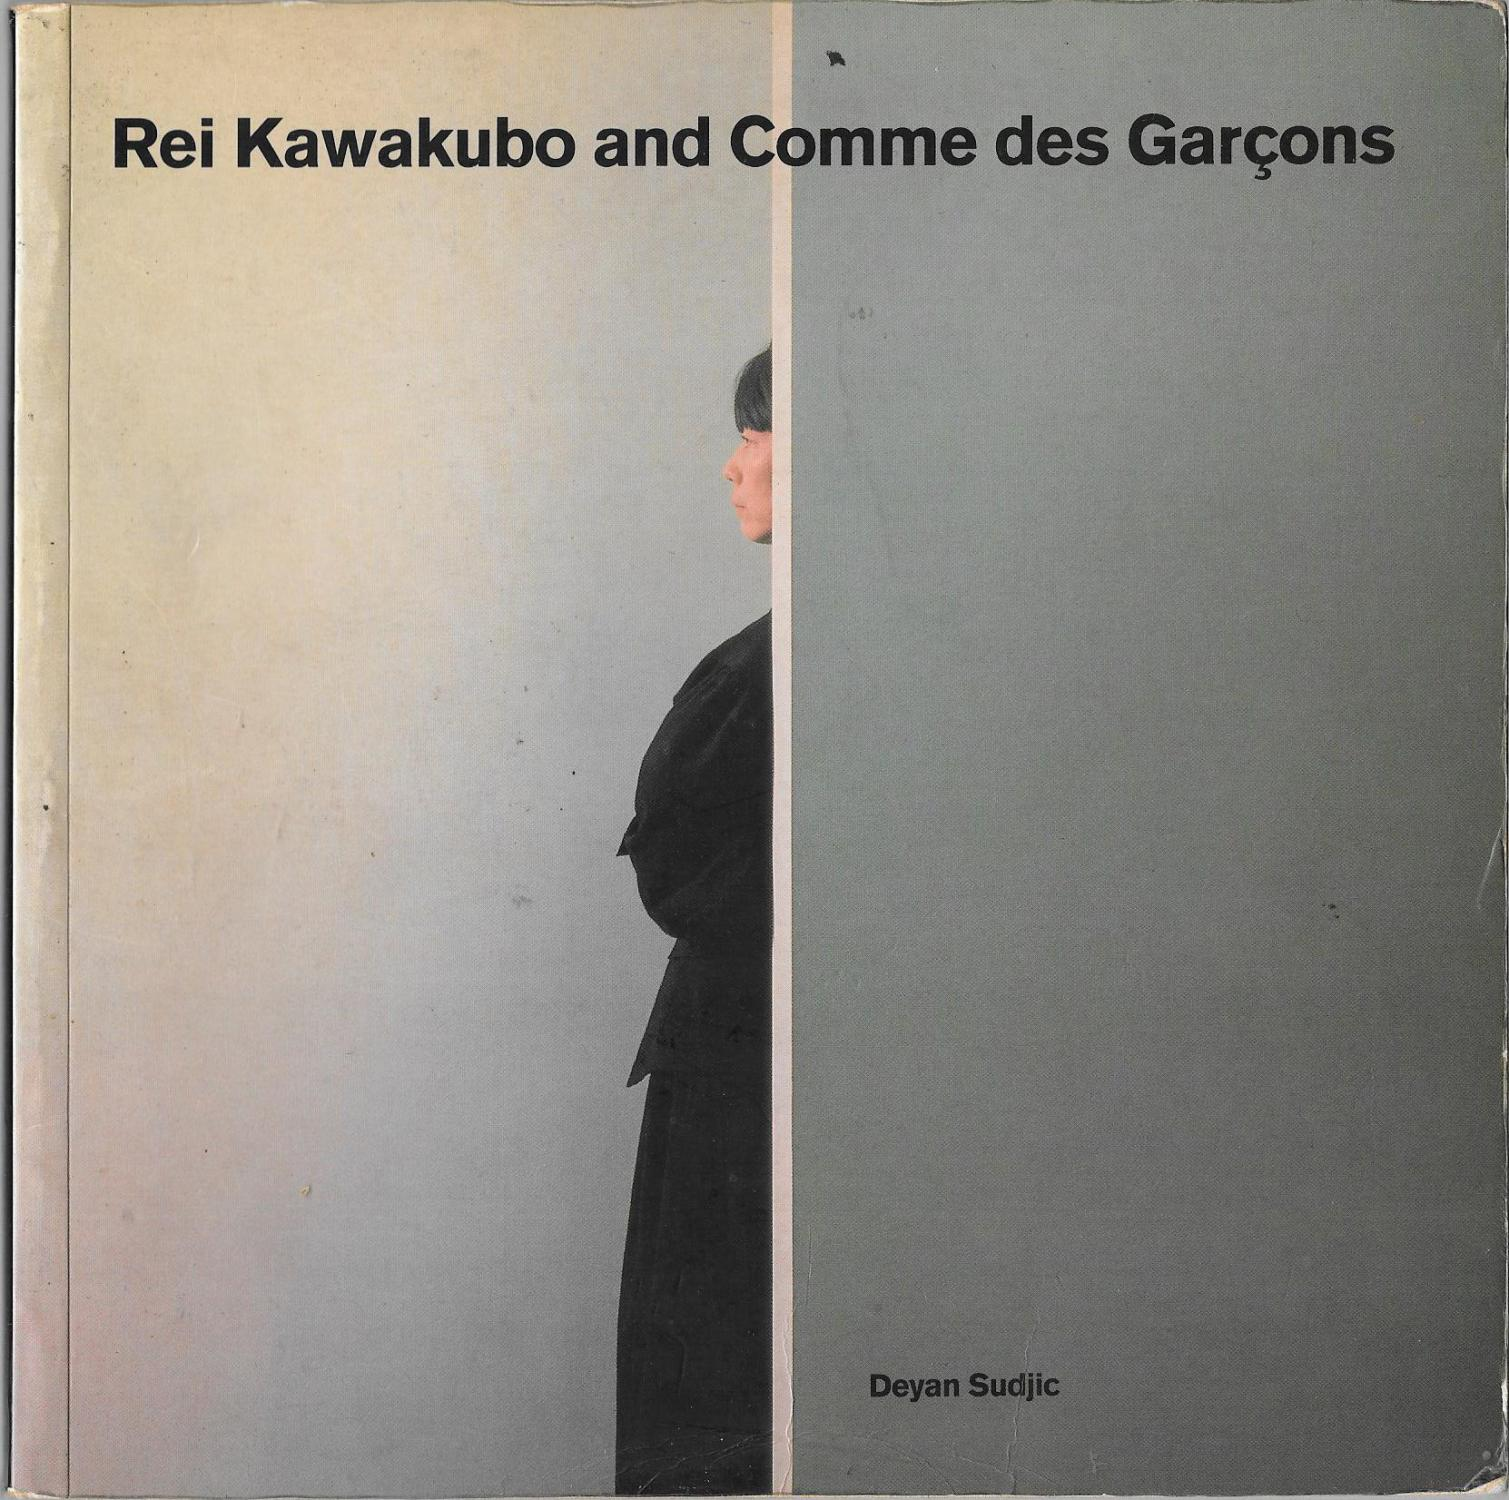 Vialibri rare books from 1990 page 10 rei kawakubo and comme des garcons blueprint monographs rizzoli new york 1990 first and only edition publishers square illustrated wrappers malvernweather Image collections